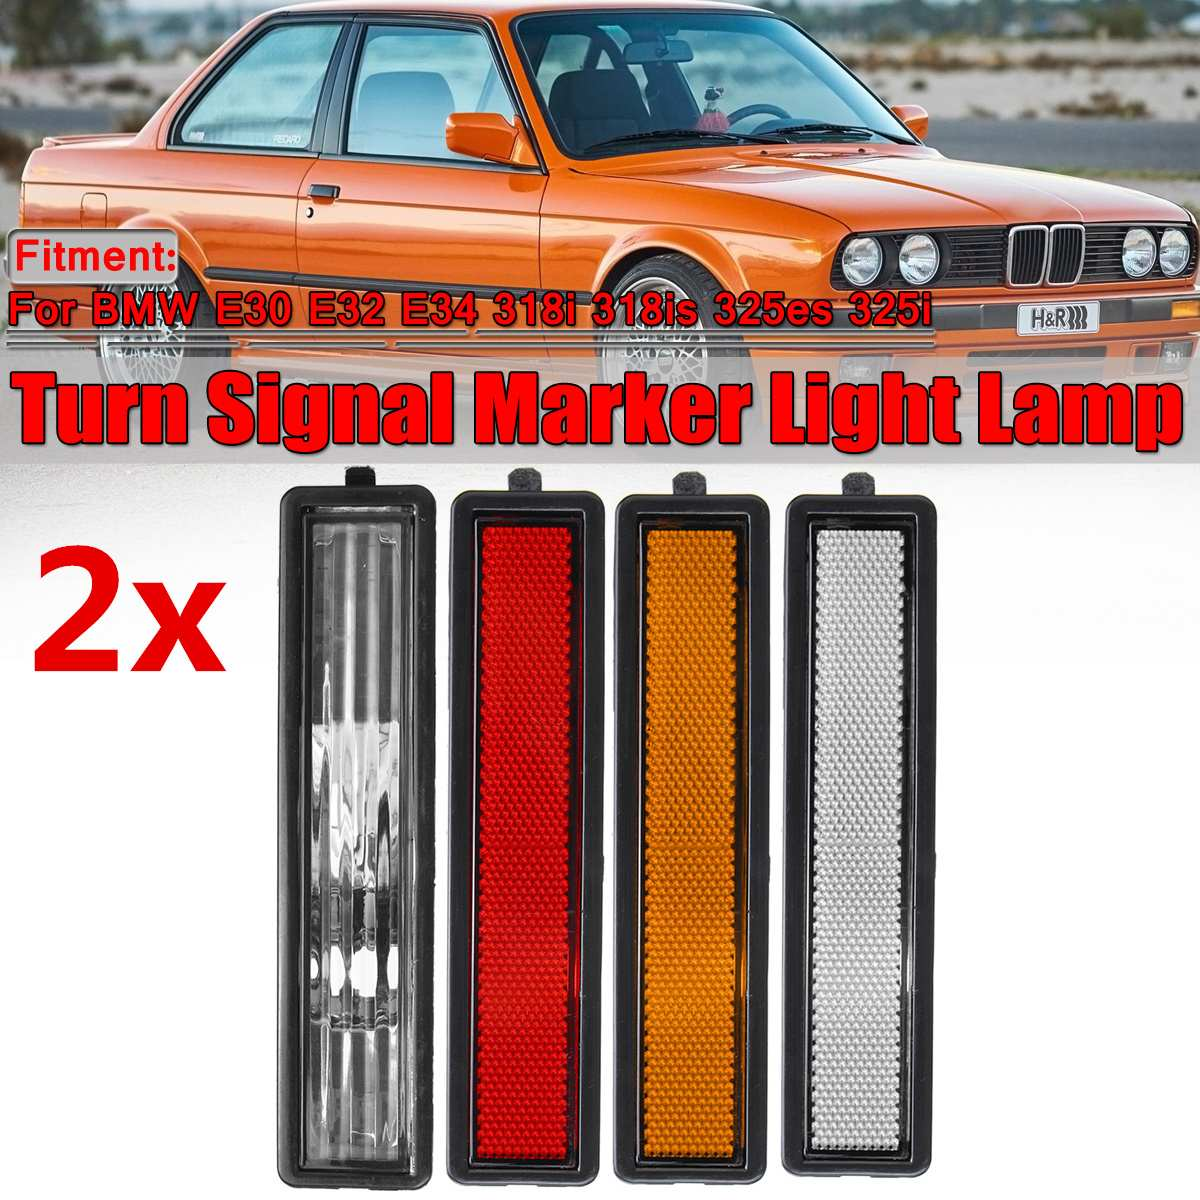 2pcs Car Rear Left Right Side Turn Signal Marker Light Lamp Lens Cover For <font><b>BMW</b></font> <font><b>E30</b></font> E32 E34 <font><b>318i</b></font> 318is 325es 325i 63141377849 image